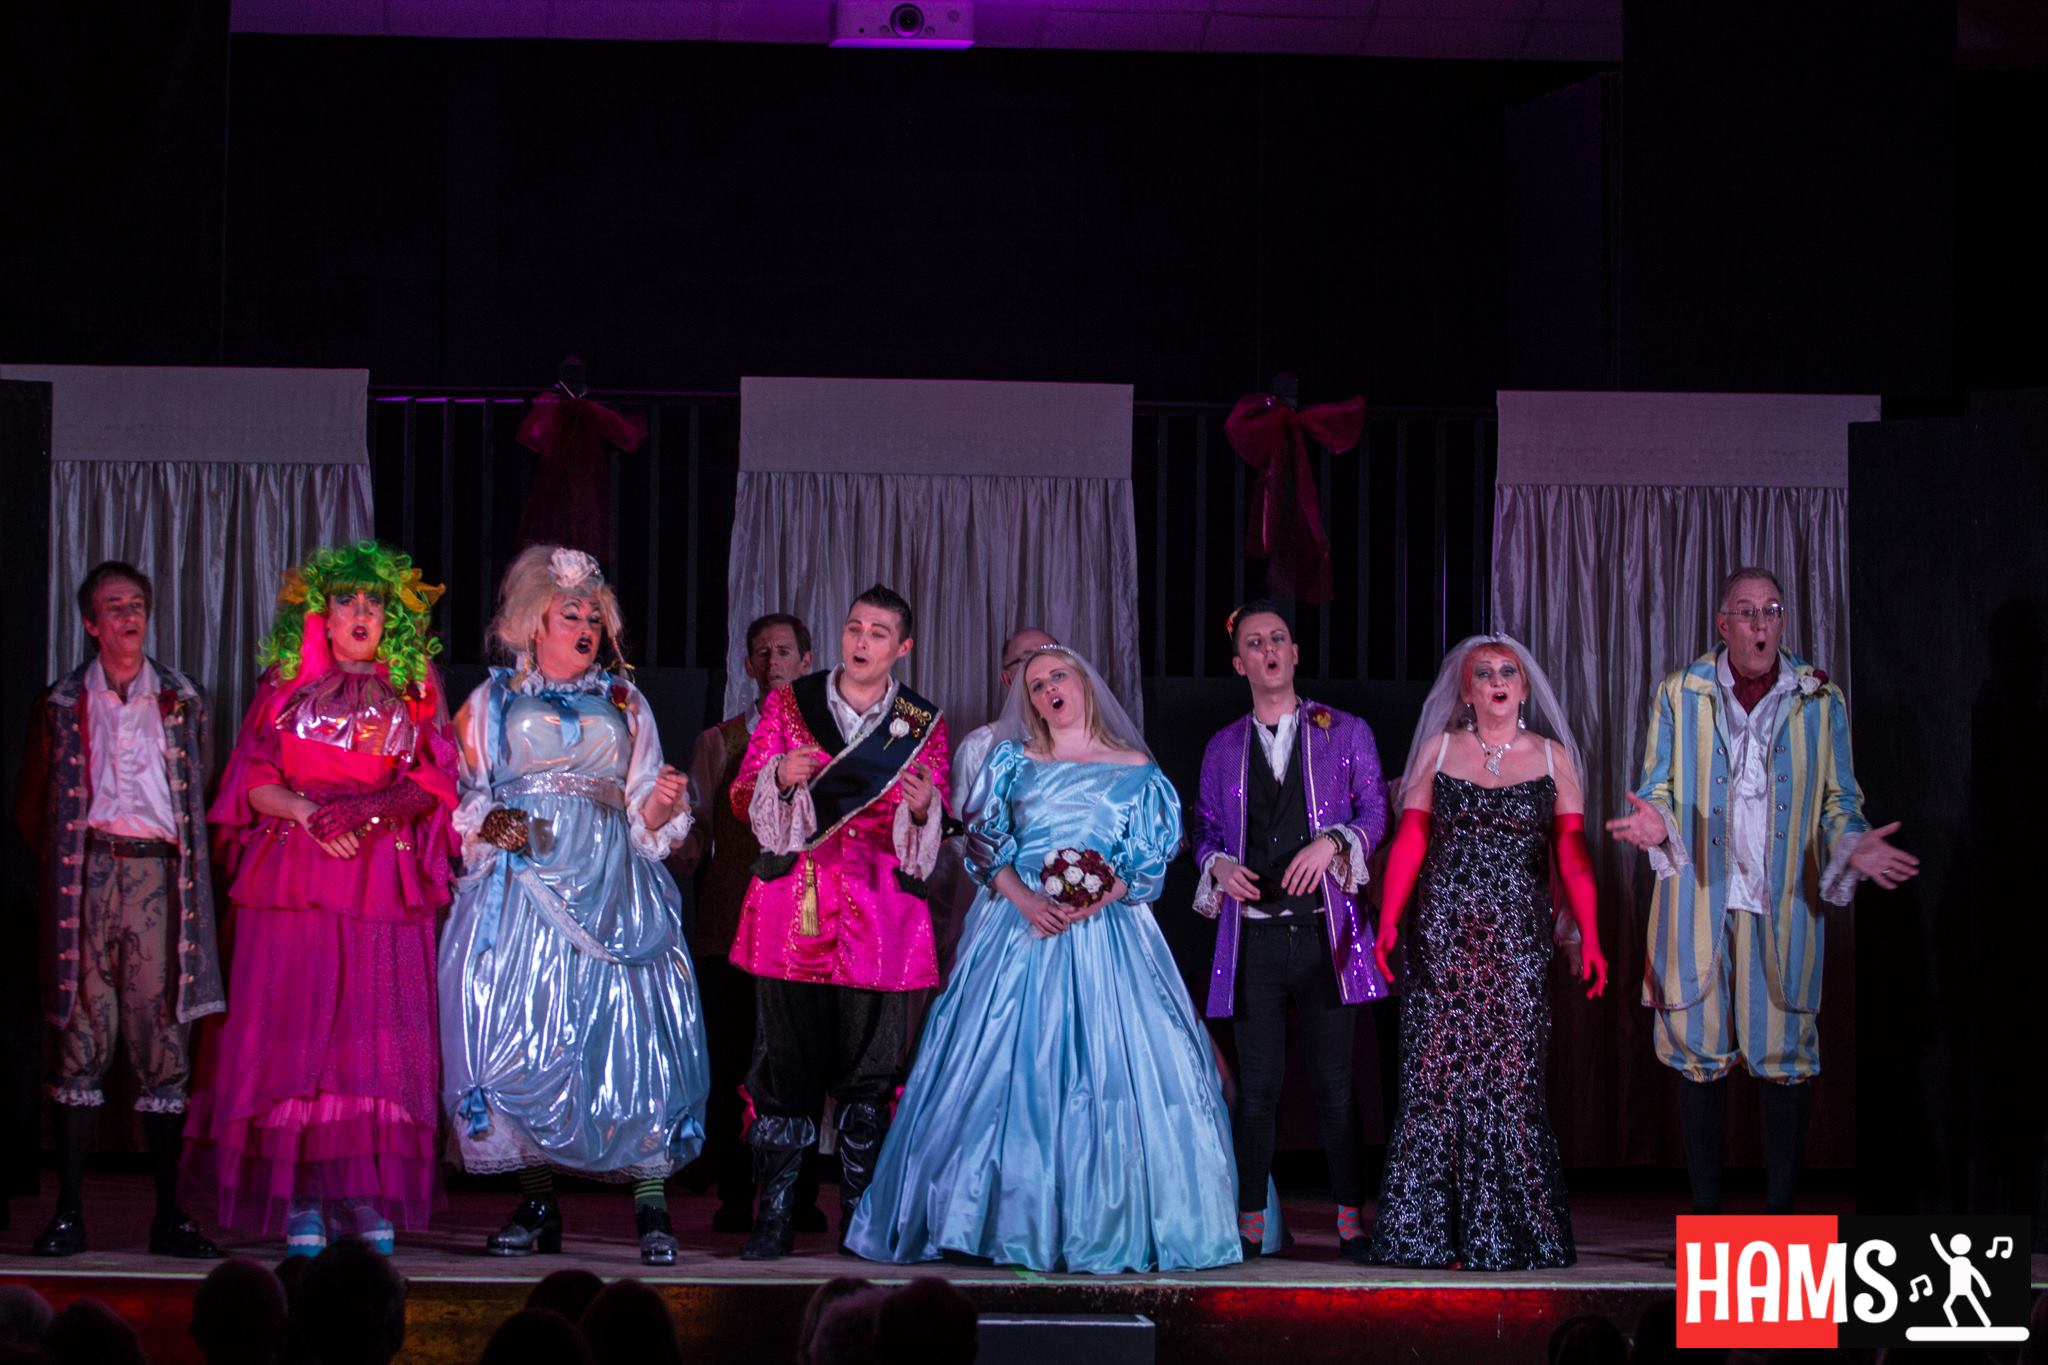 HAMS Productions 2017 cast on stage